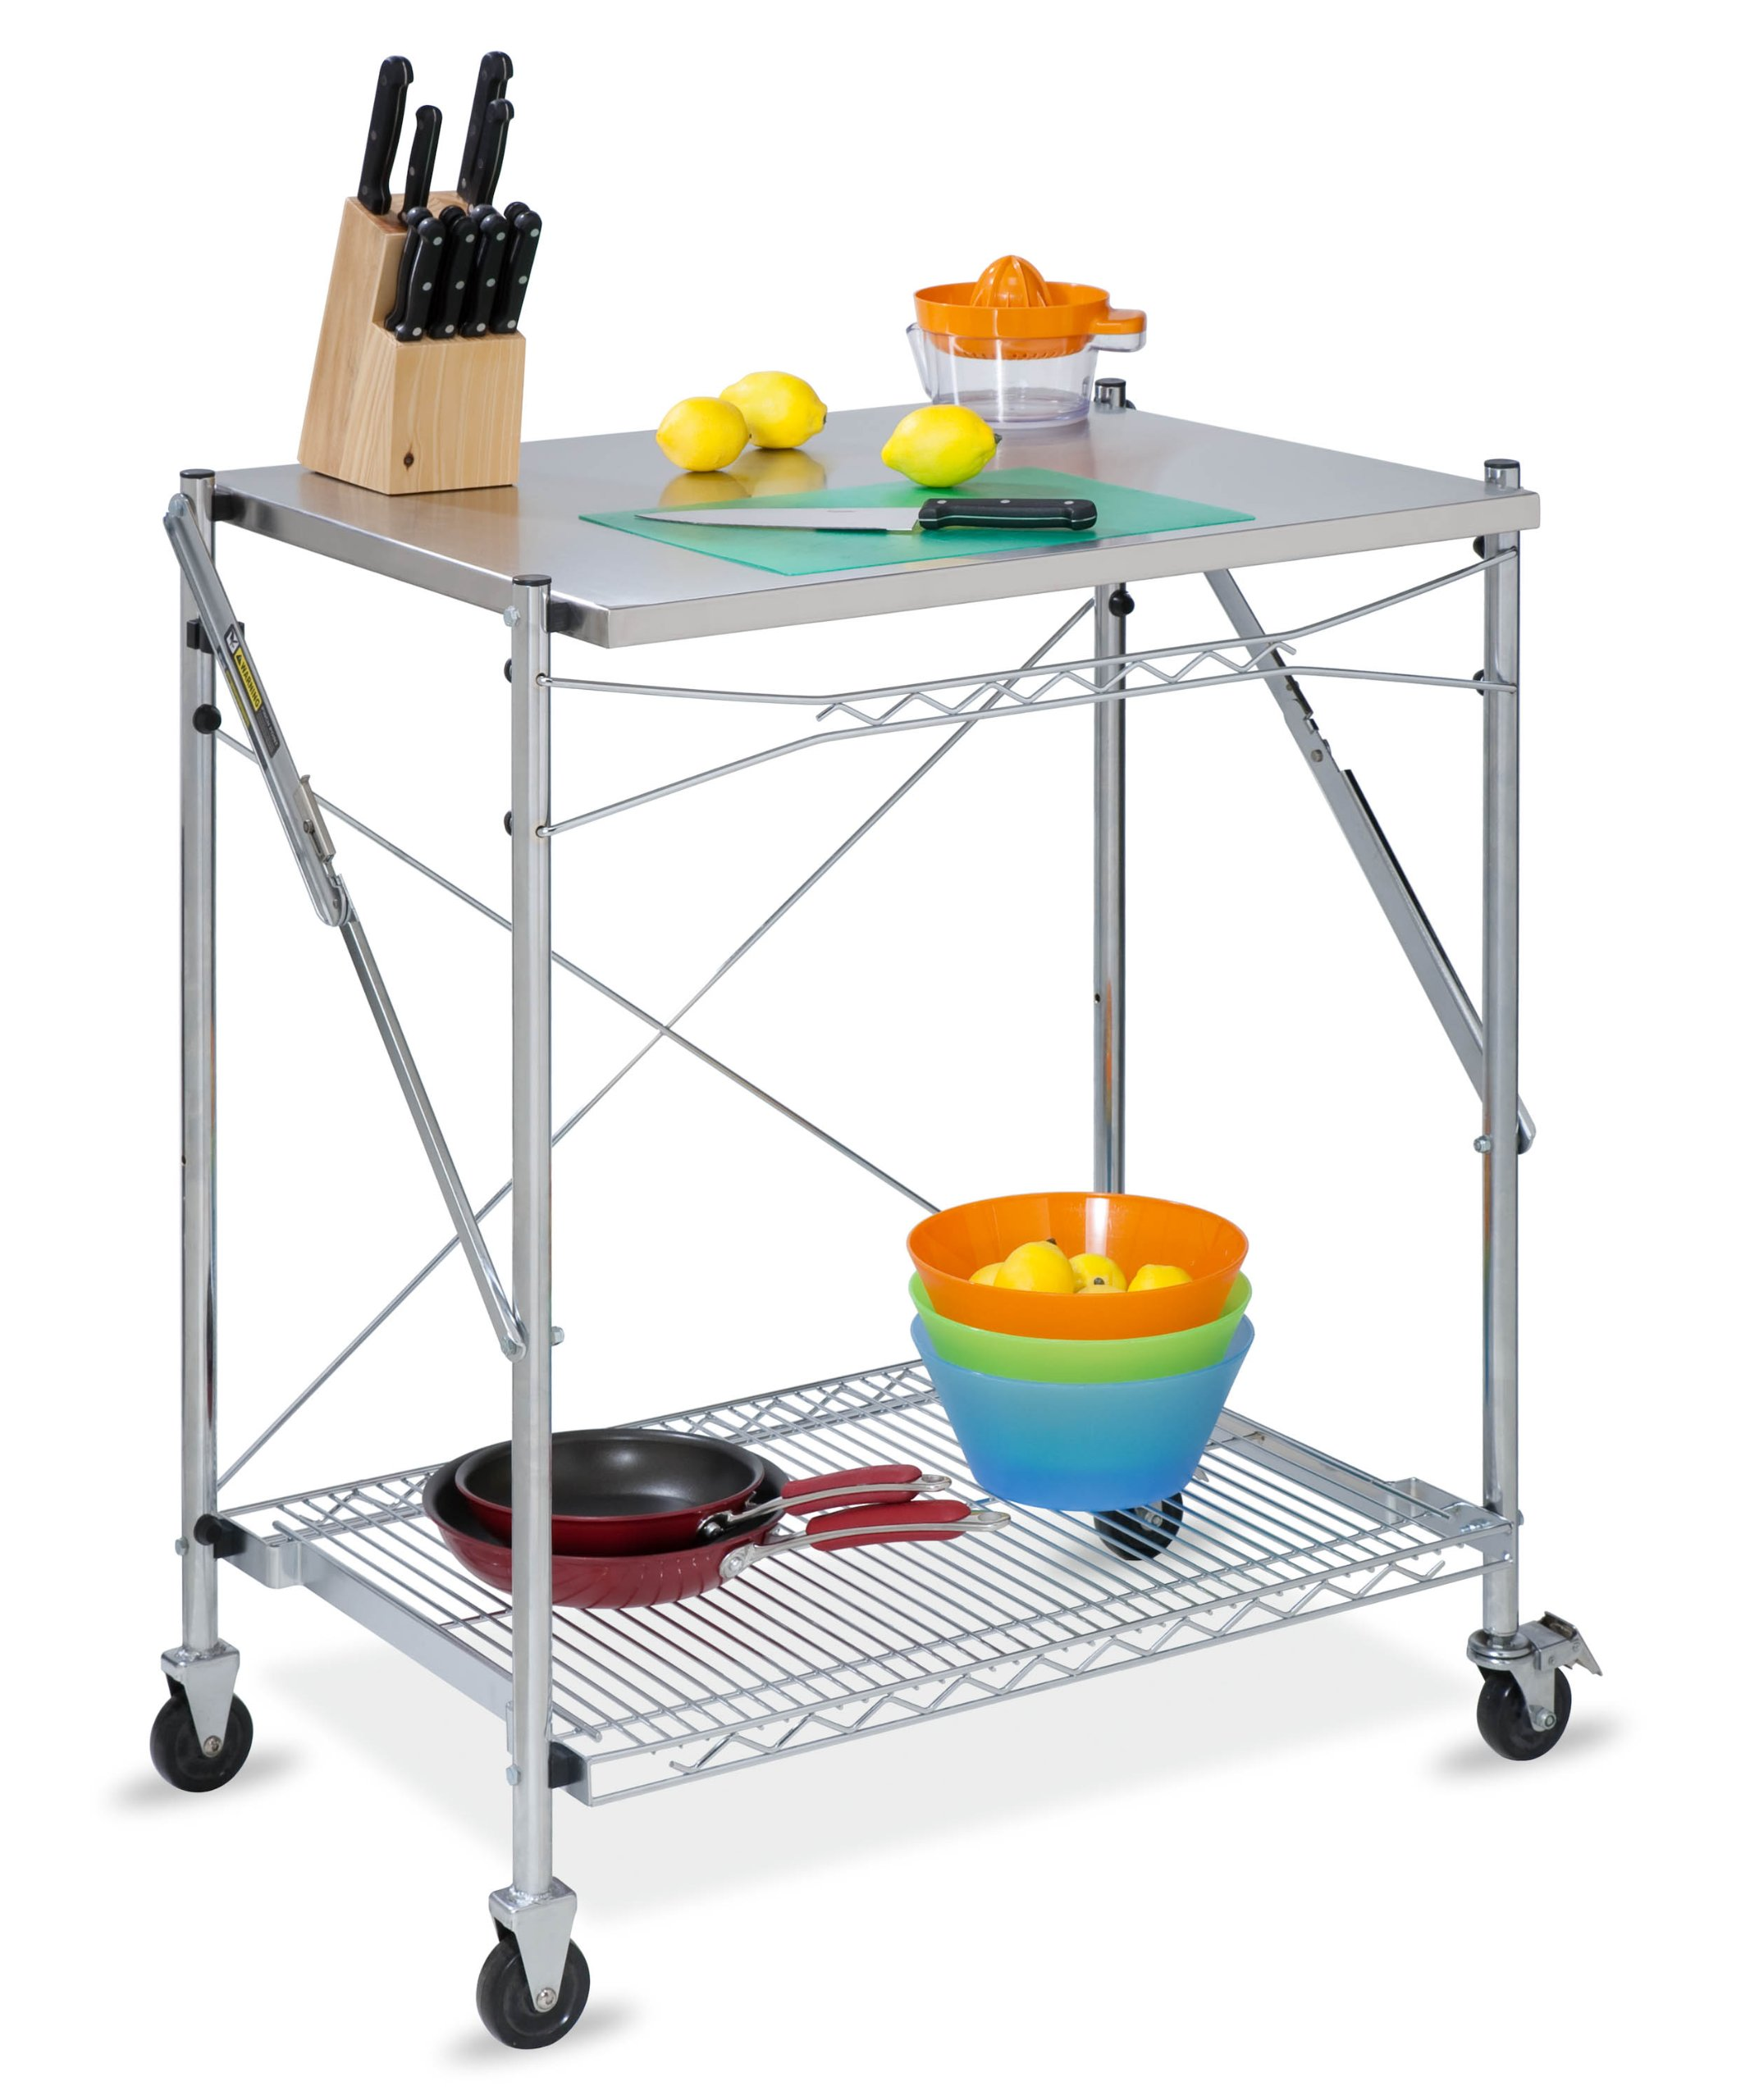 Honey-Can-Do TBL-01566 stainless steel folding urban work table grey